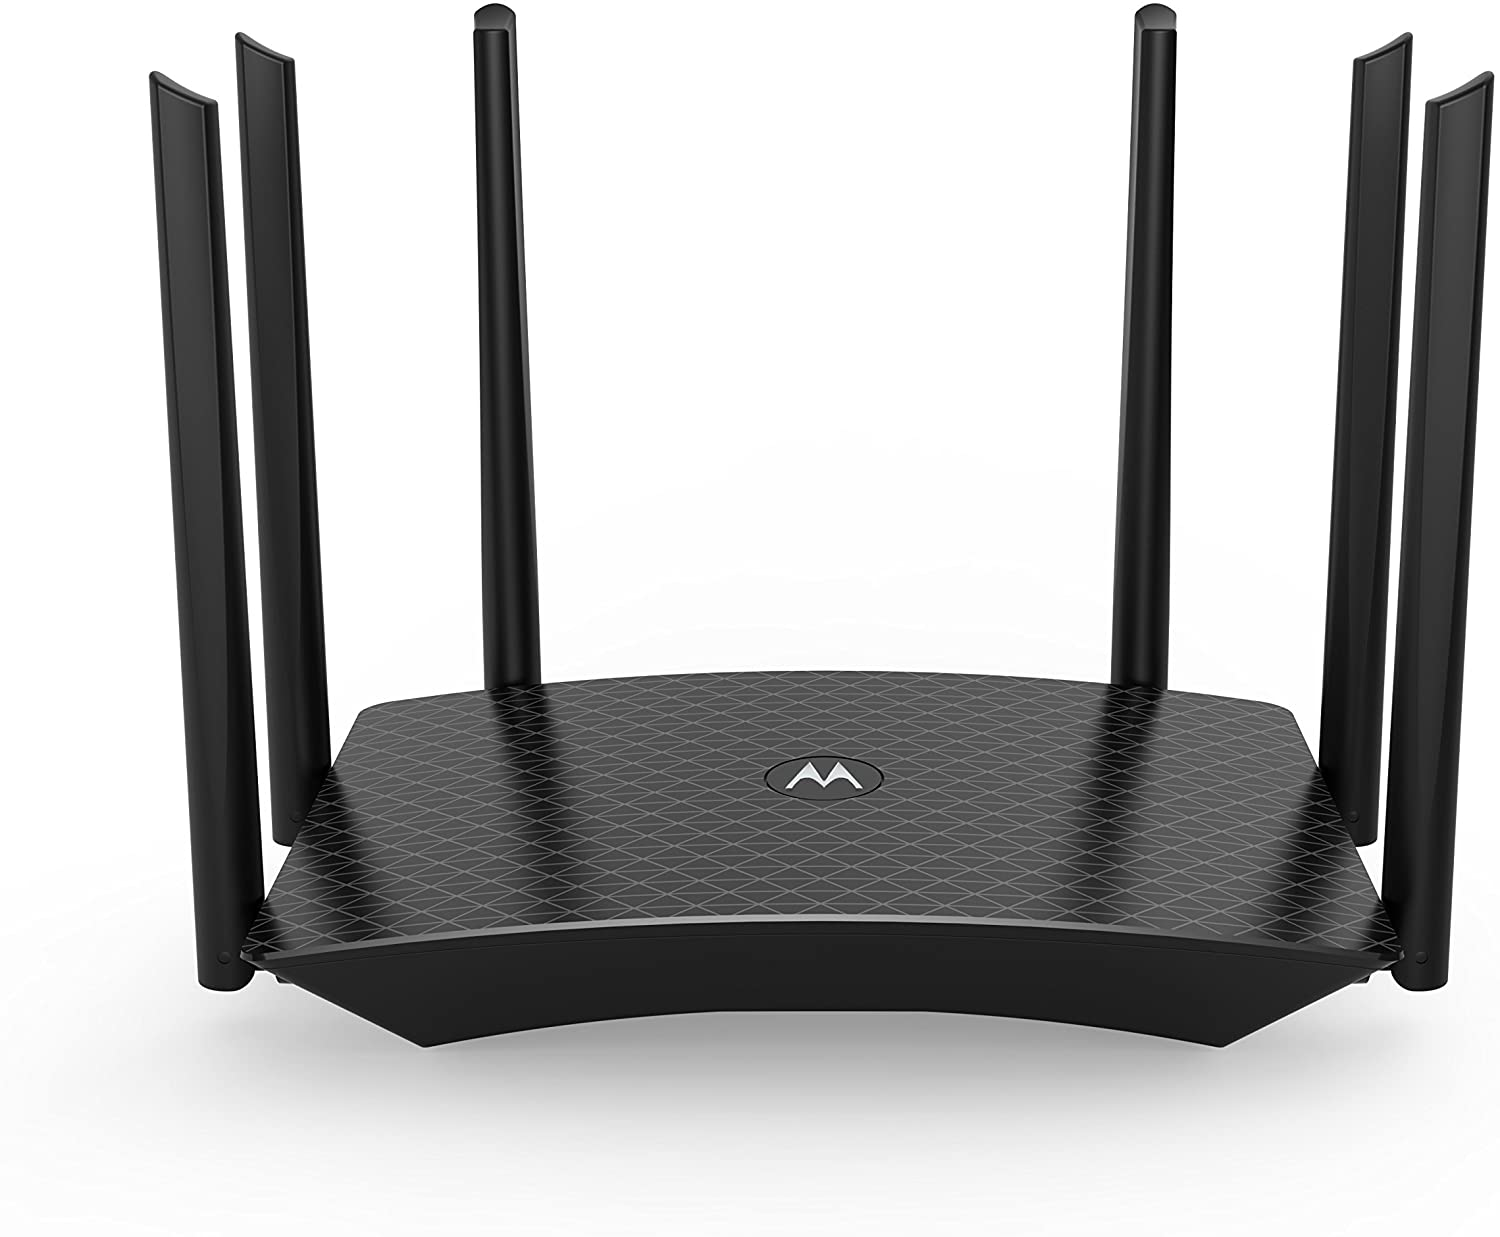 Motorola MR1700 AC1700 Dual-Band Extended WiFi Gigabit Router